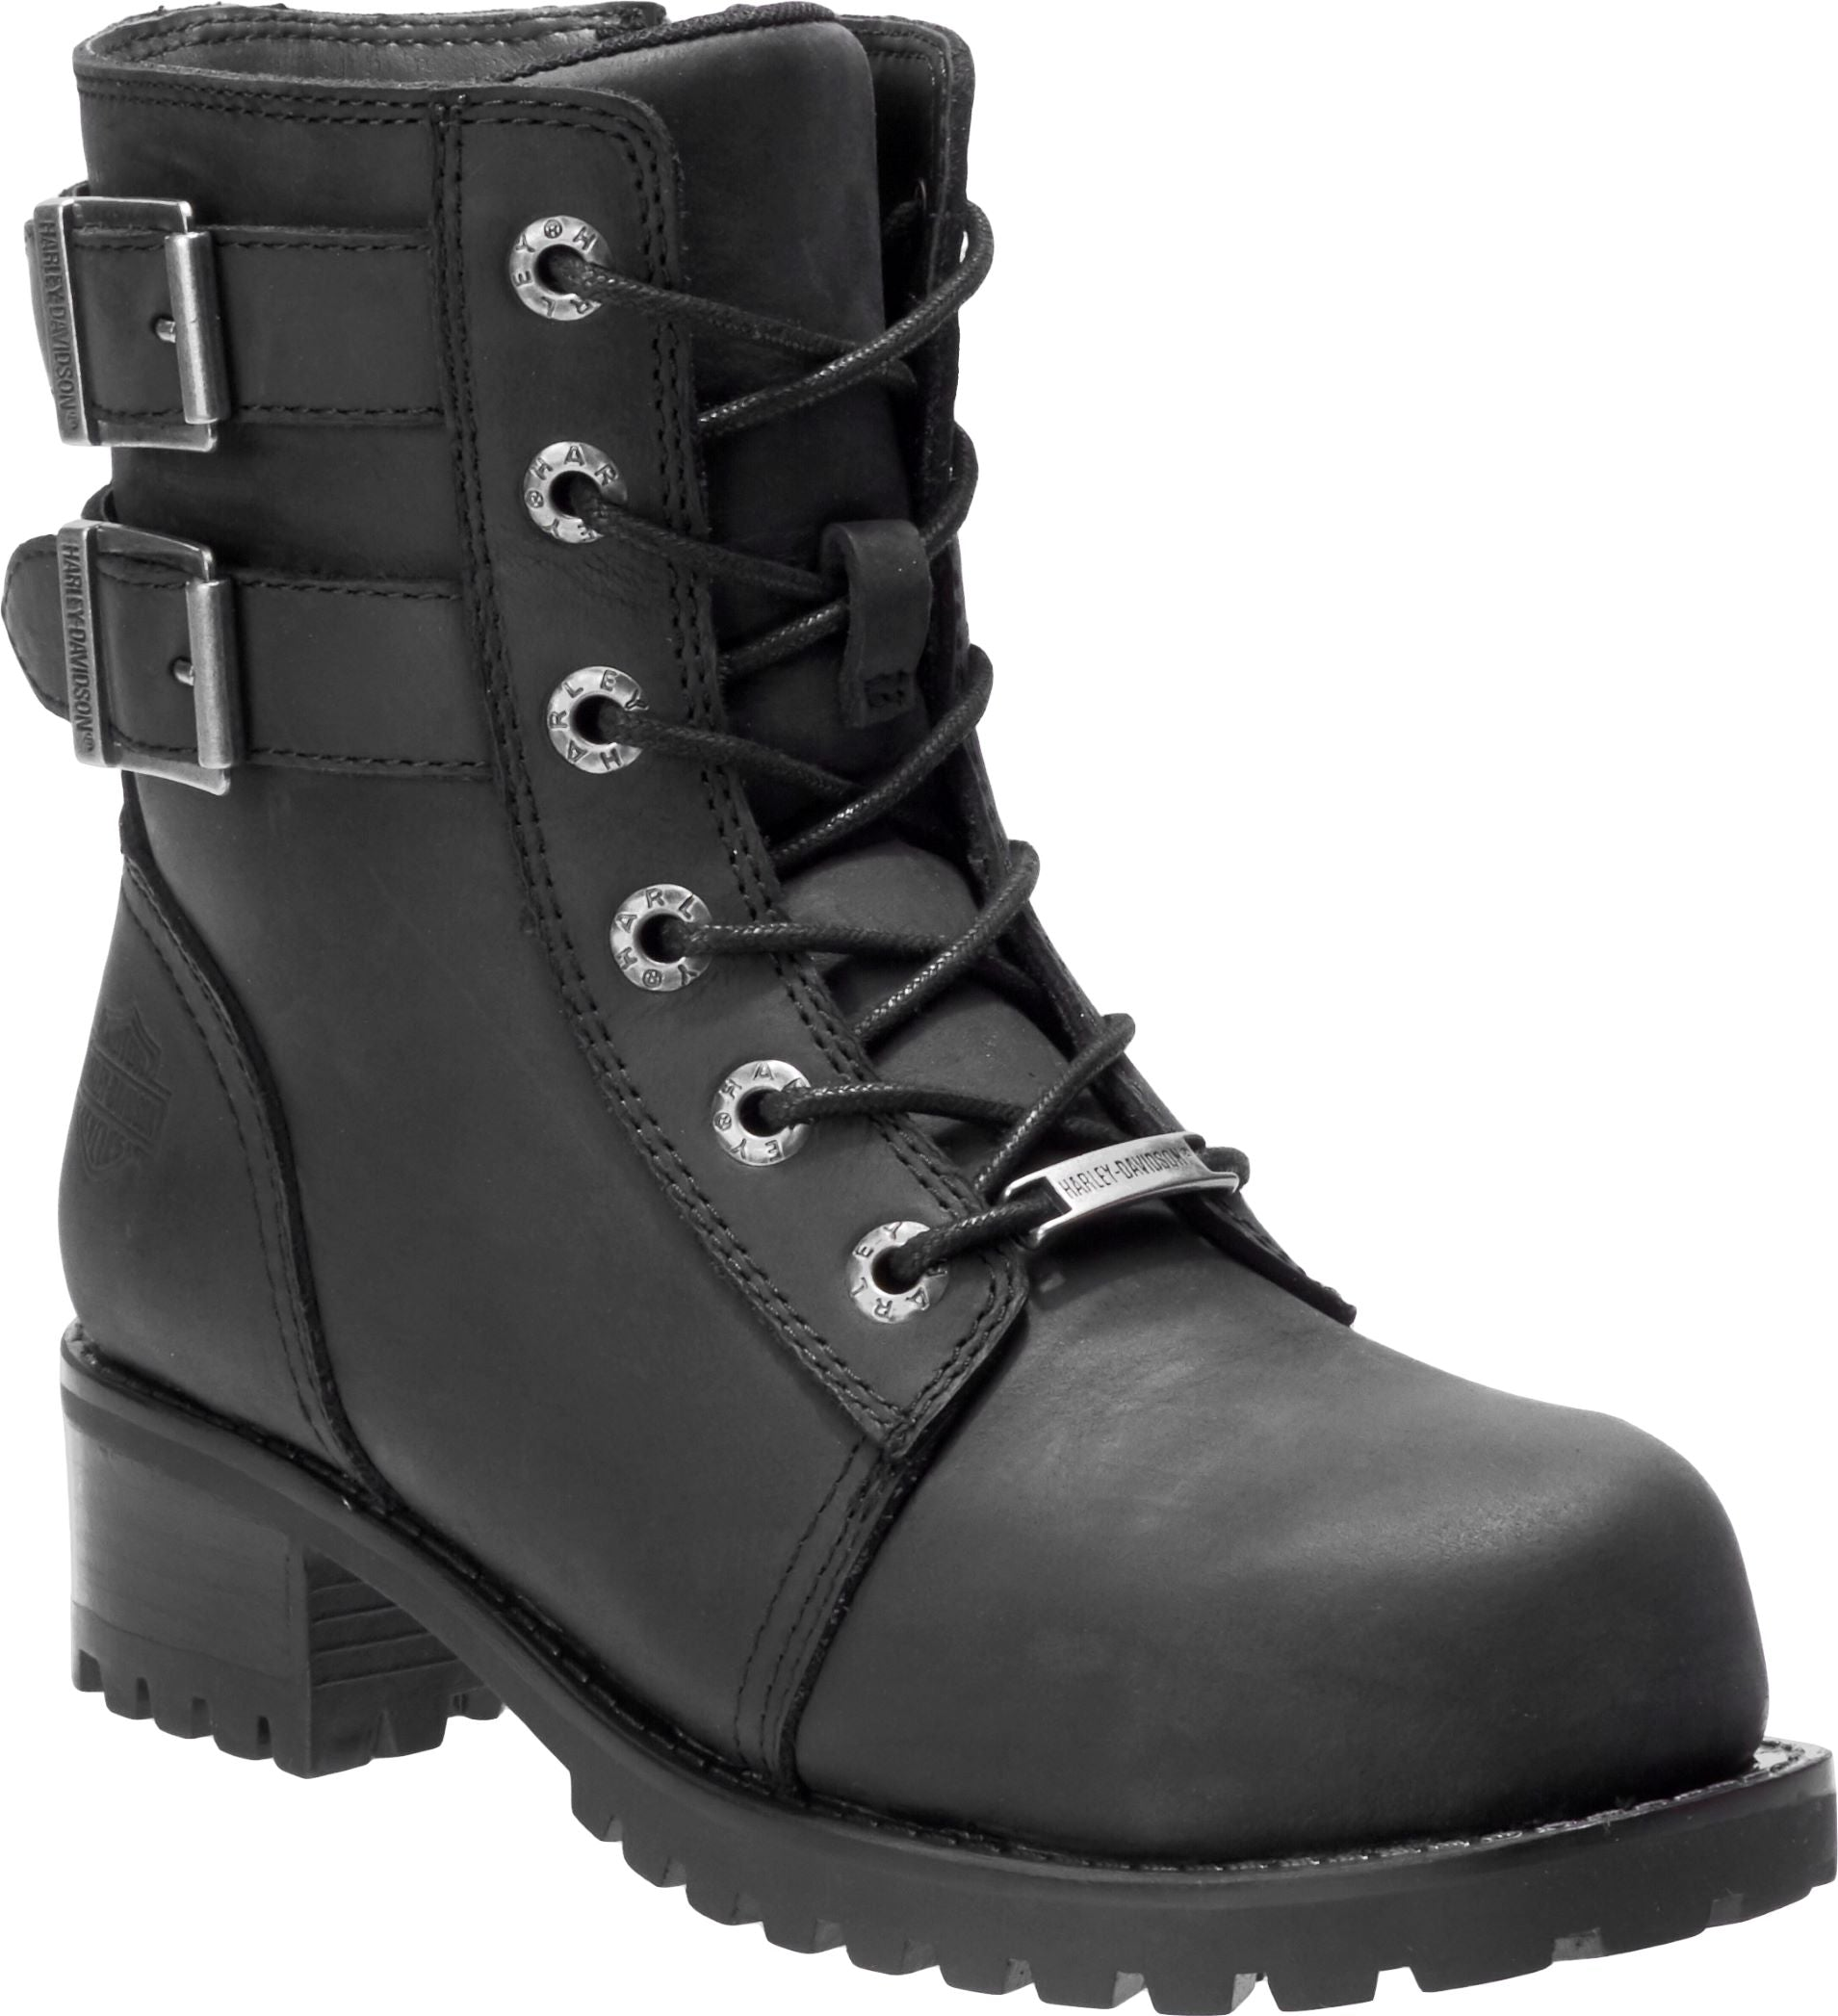 'Harley Davidson' D84464 - Women's Archer Steel Toe Boot - Black